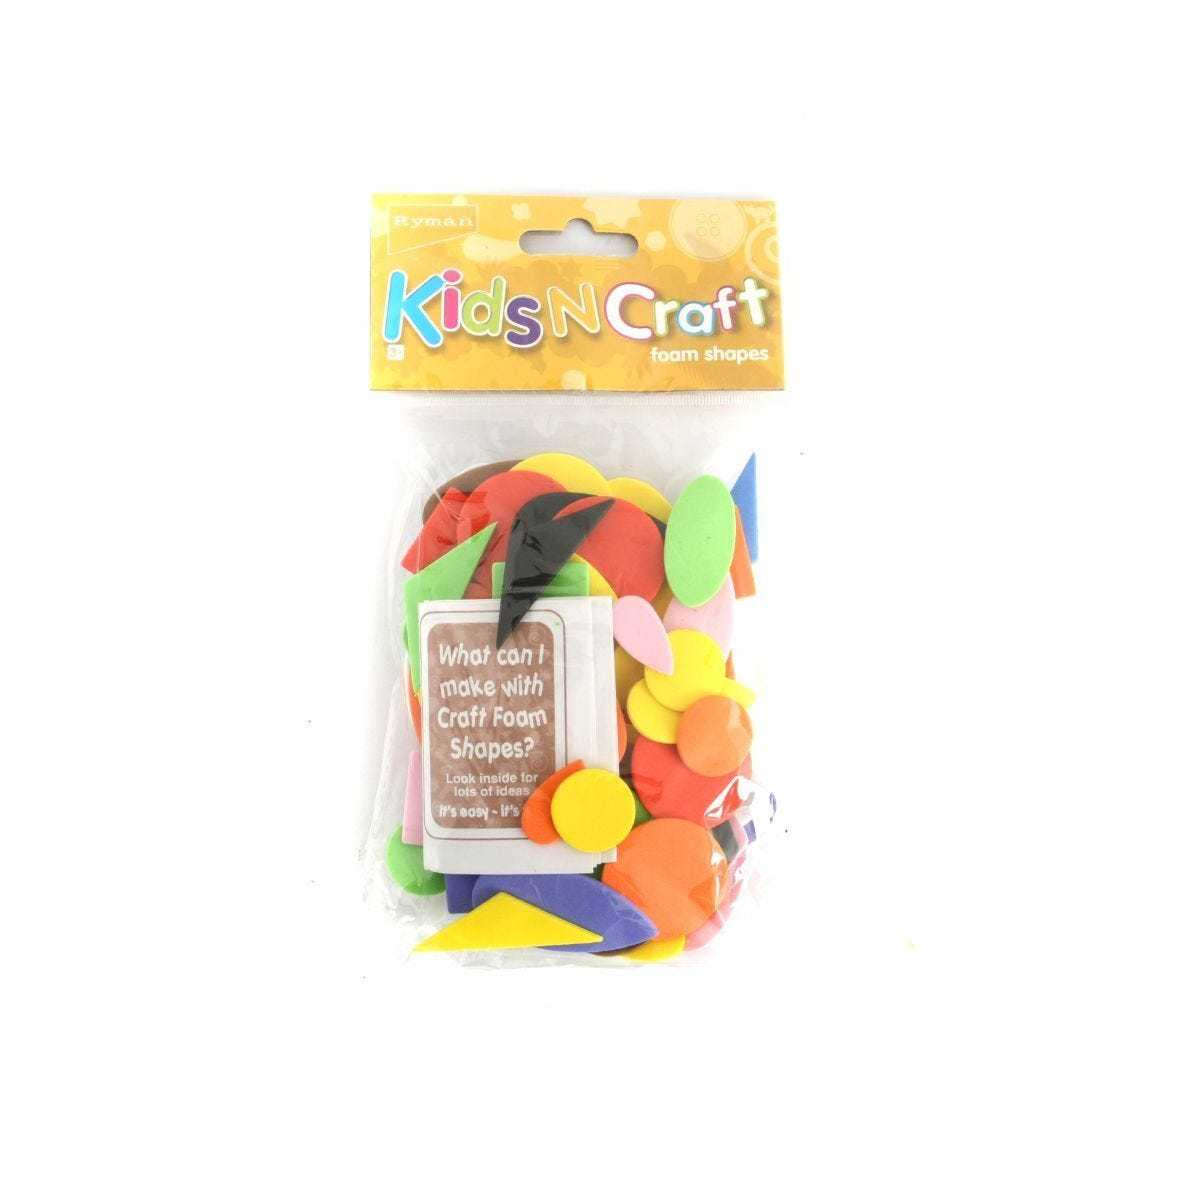 Ryman Activity Kit Foam Shapes